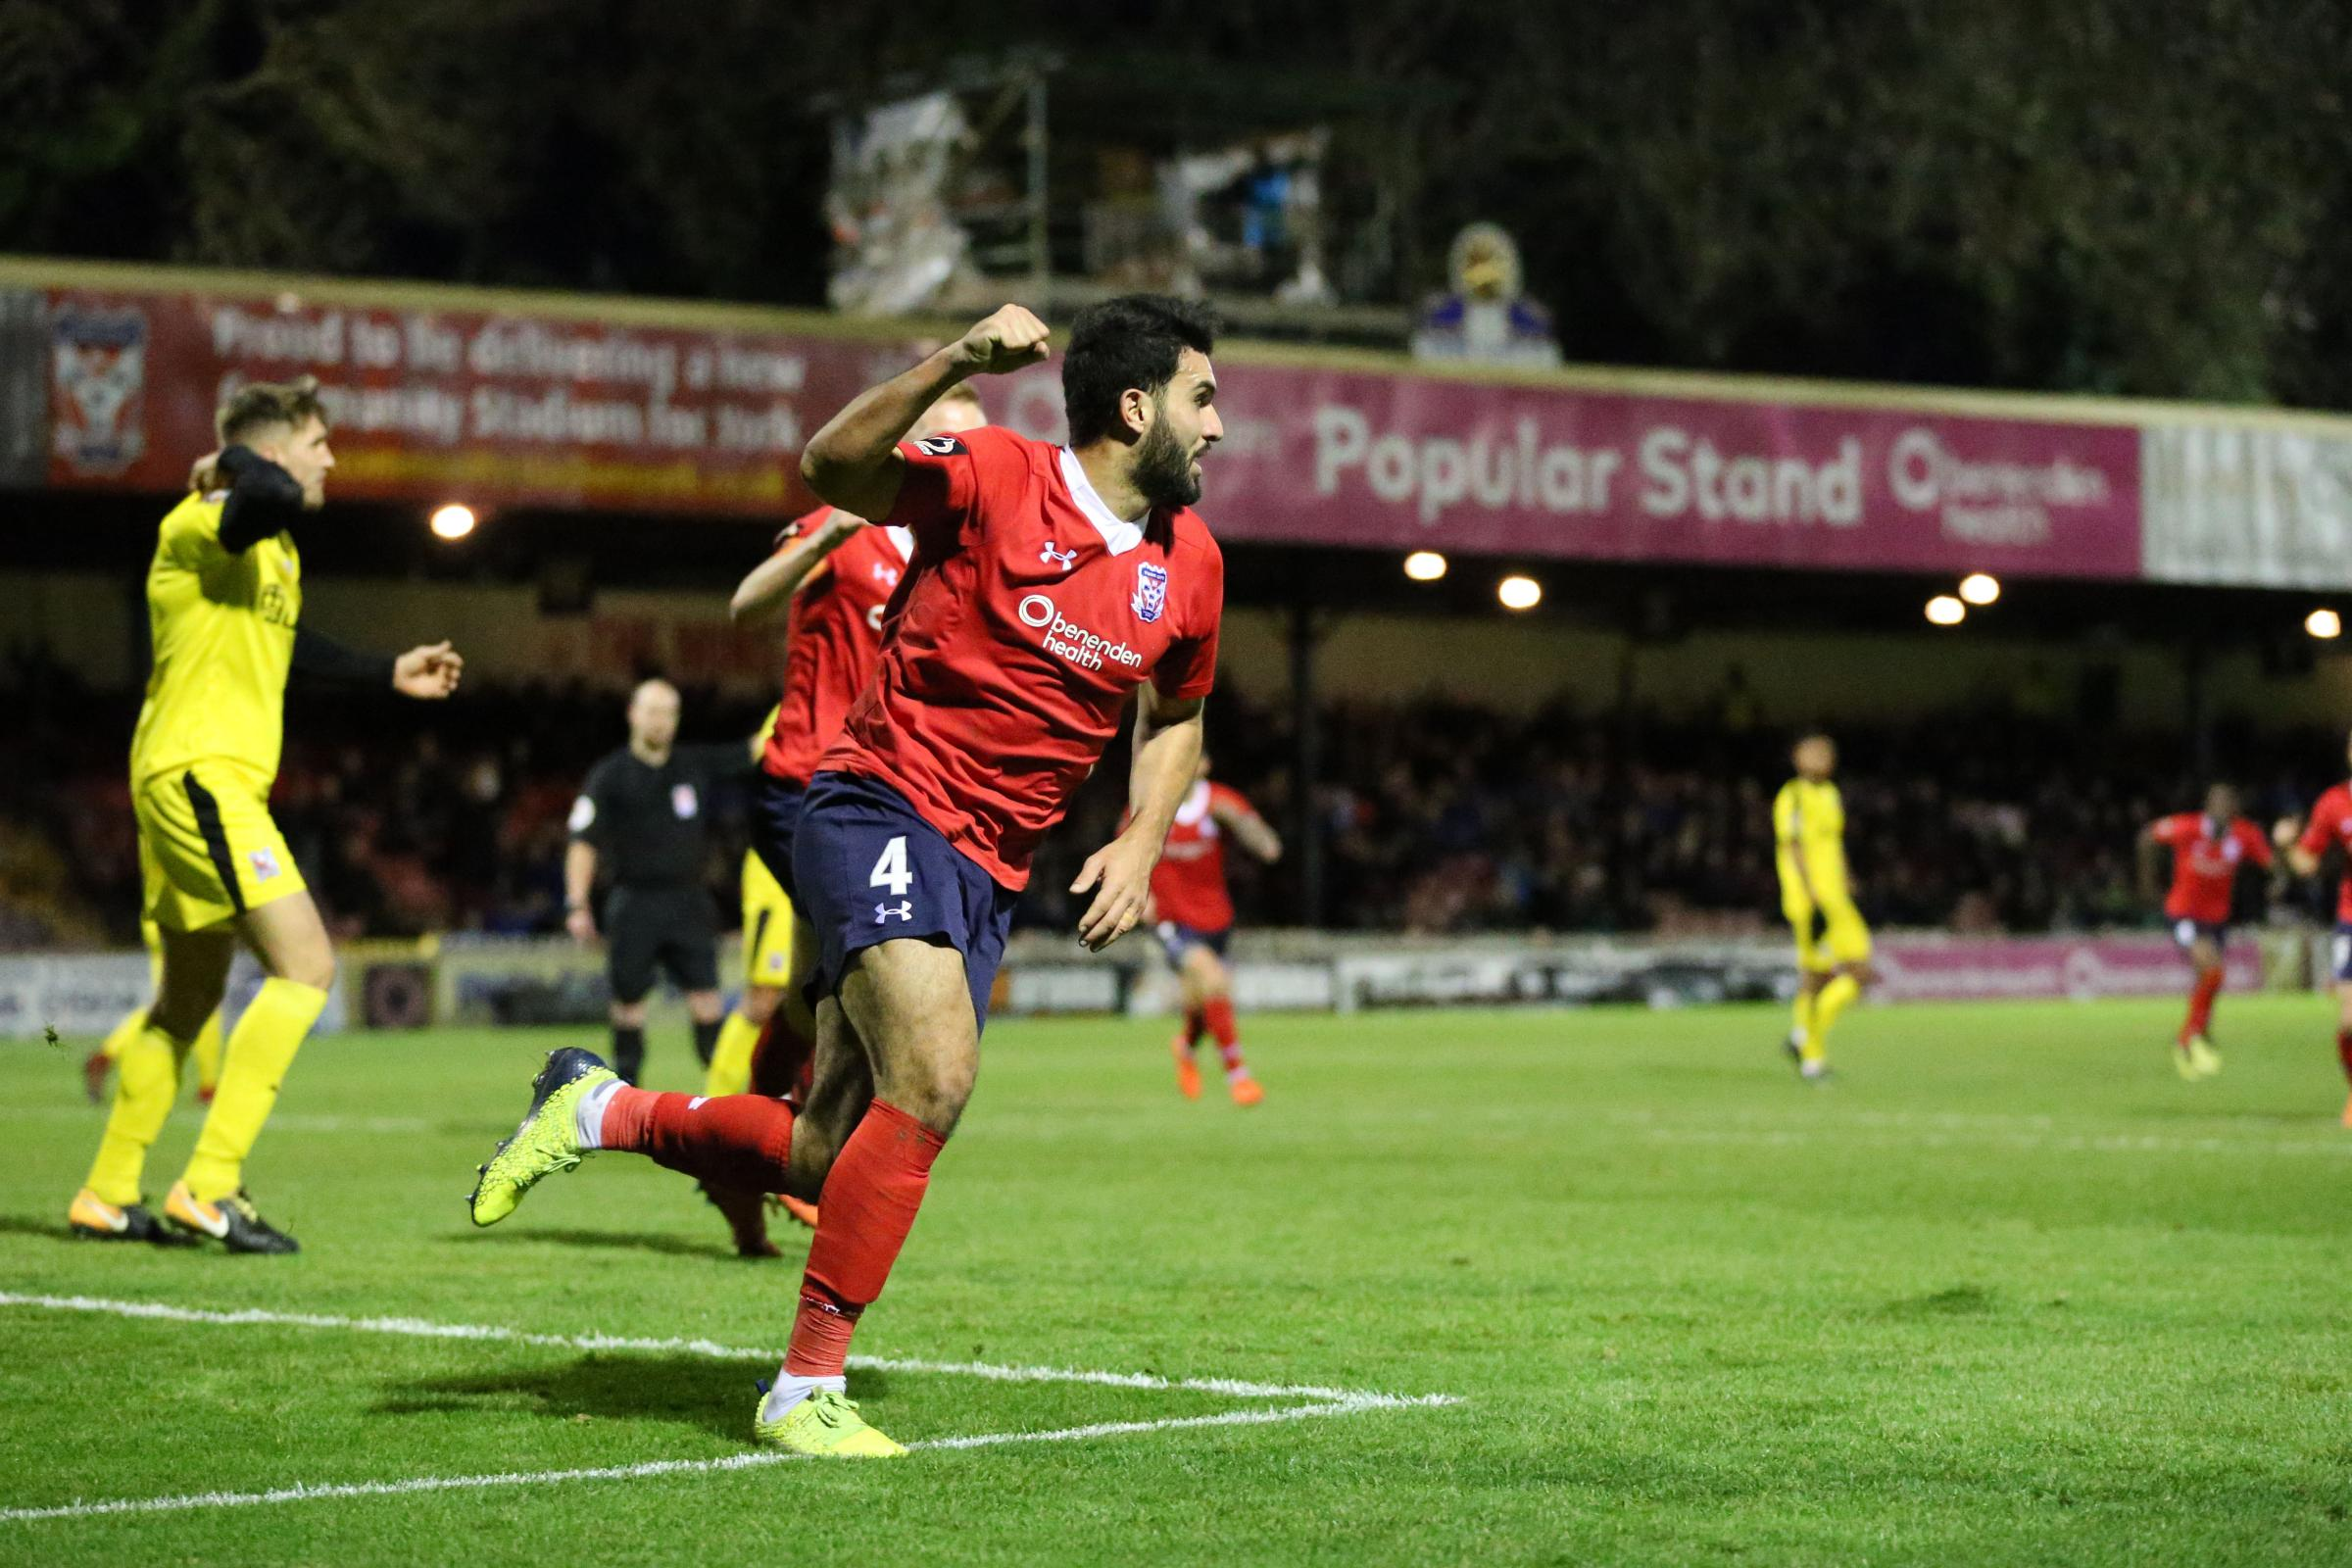 IN SEARCH OF A NEW BOSS: York City's Hamza Bencherif scored against Darlington recently. But the club are in deep trouble, and now managerless too. Photo: Gordon Clayton